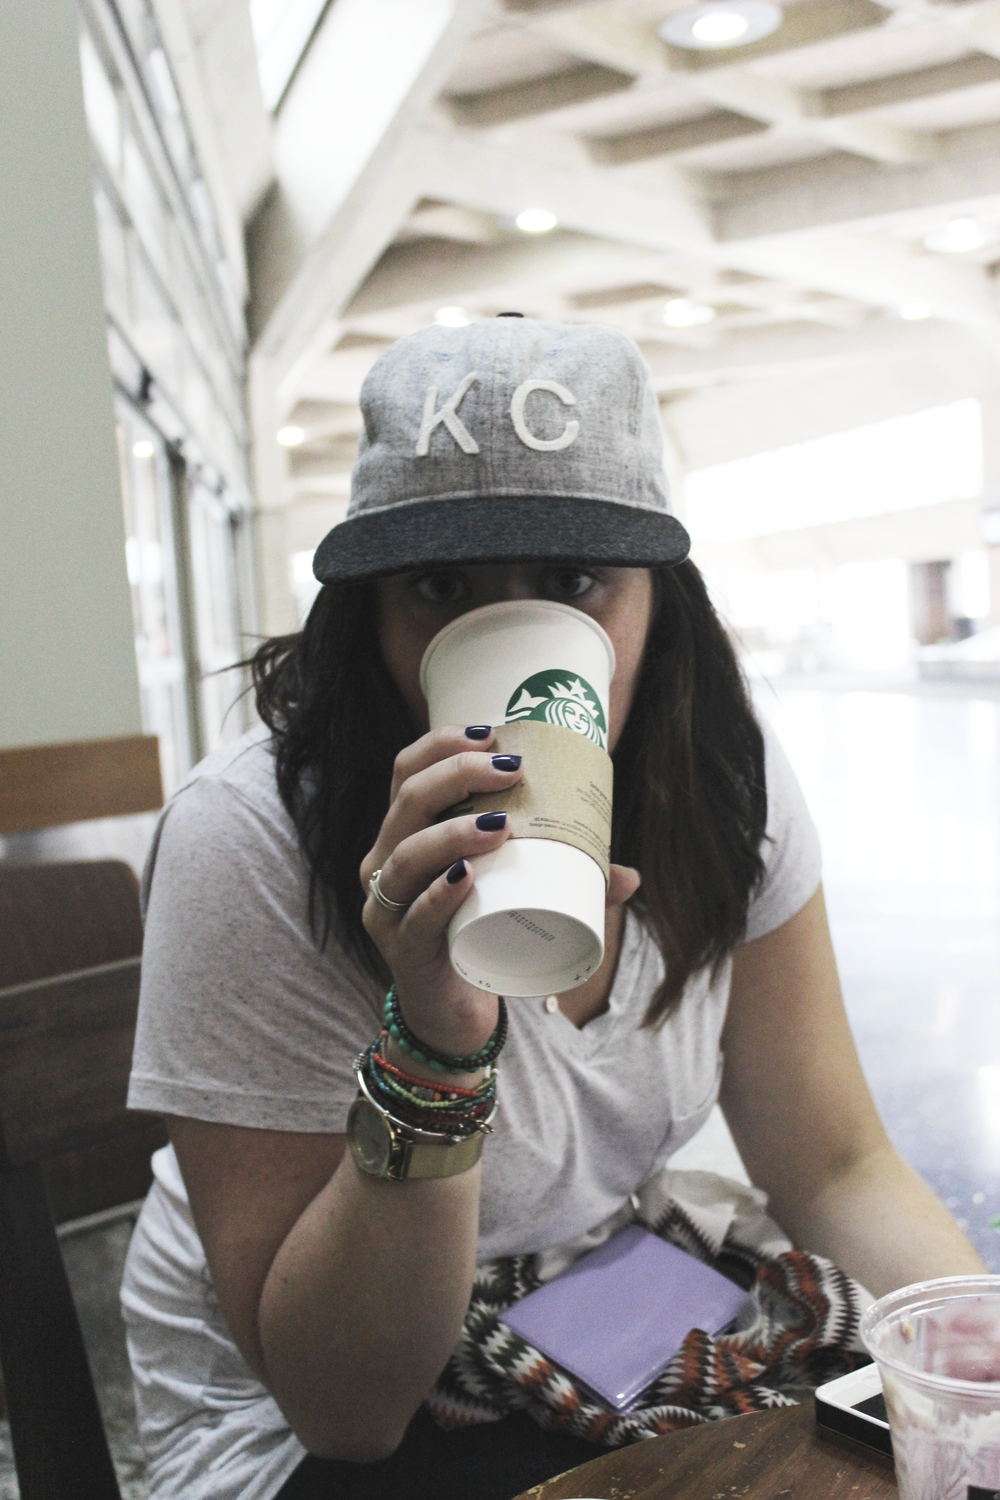 My last cup of Starbucks. Had to take KC with me so I bought a Baldwin hat!